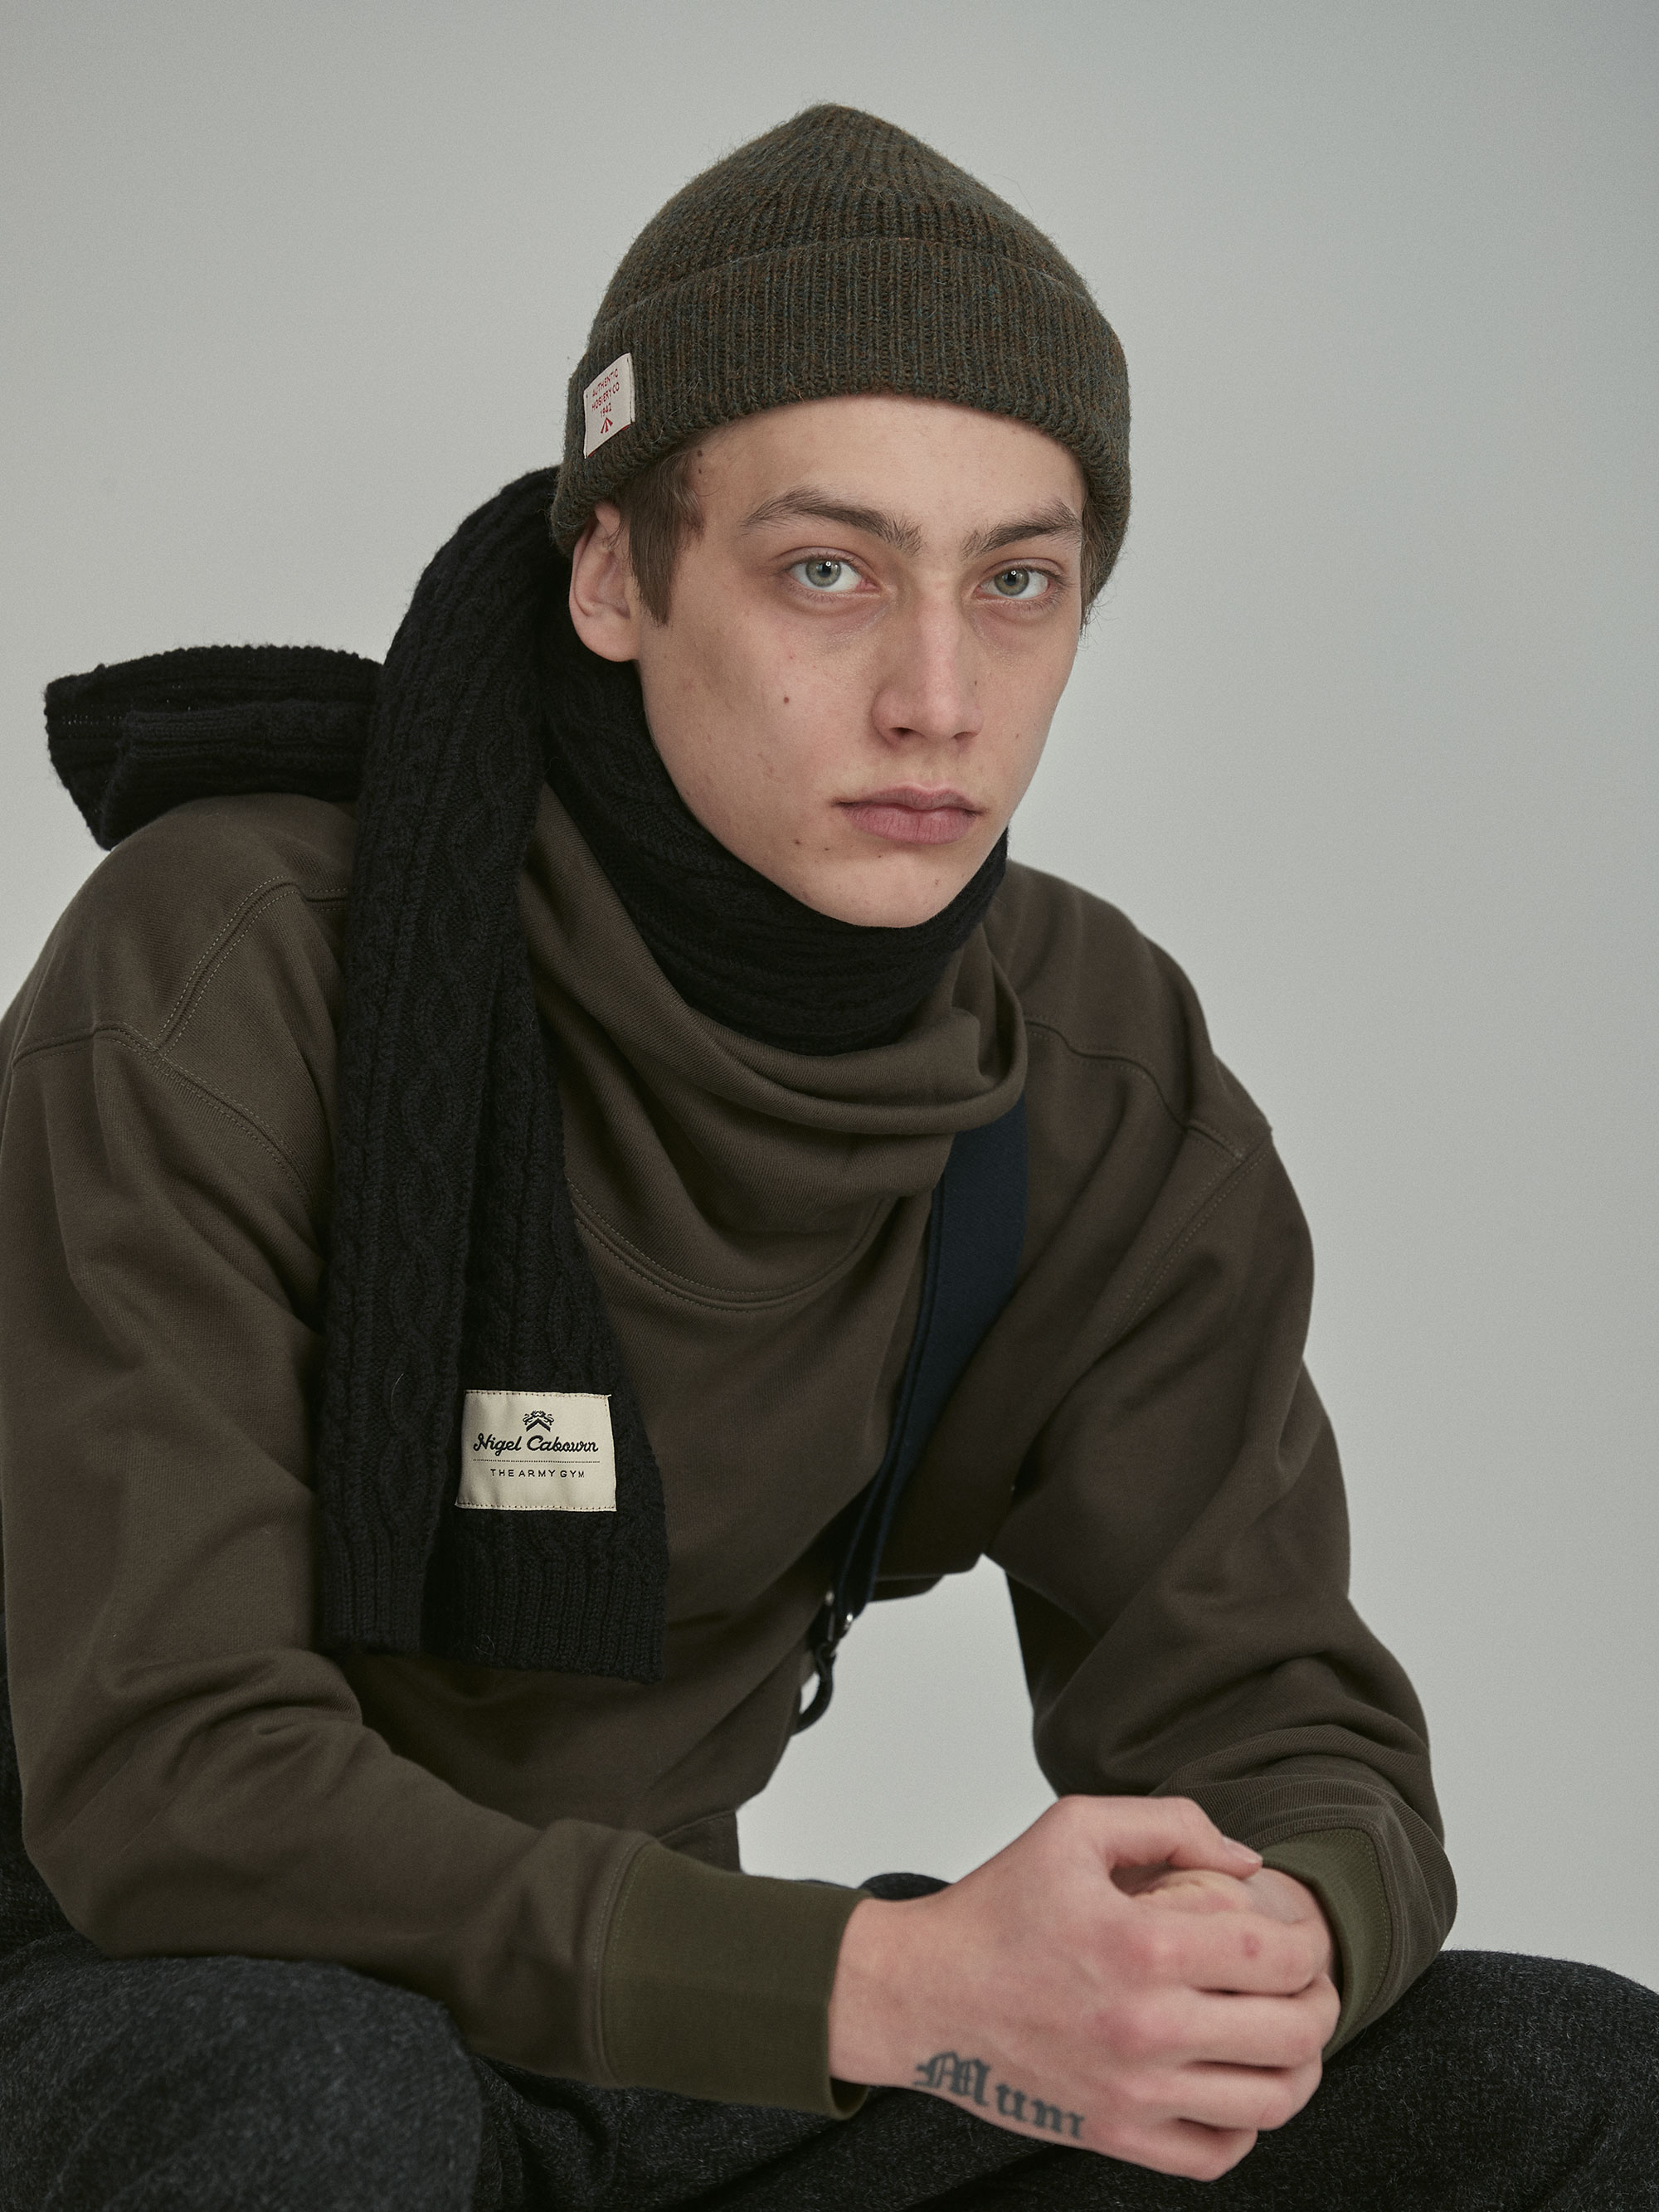 nc_aw19_authentic_013_web